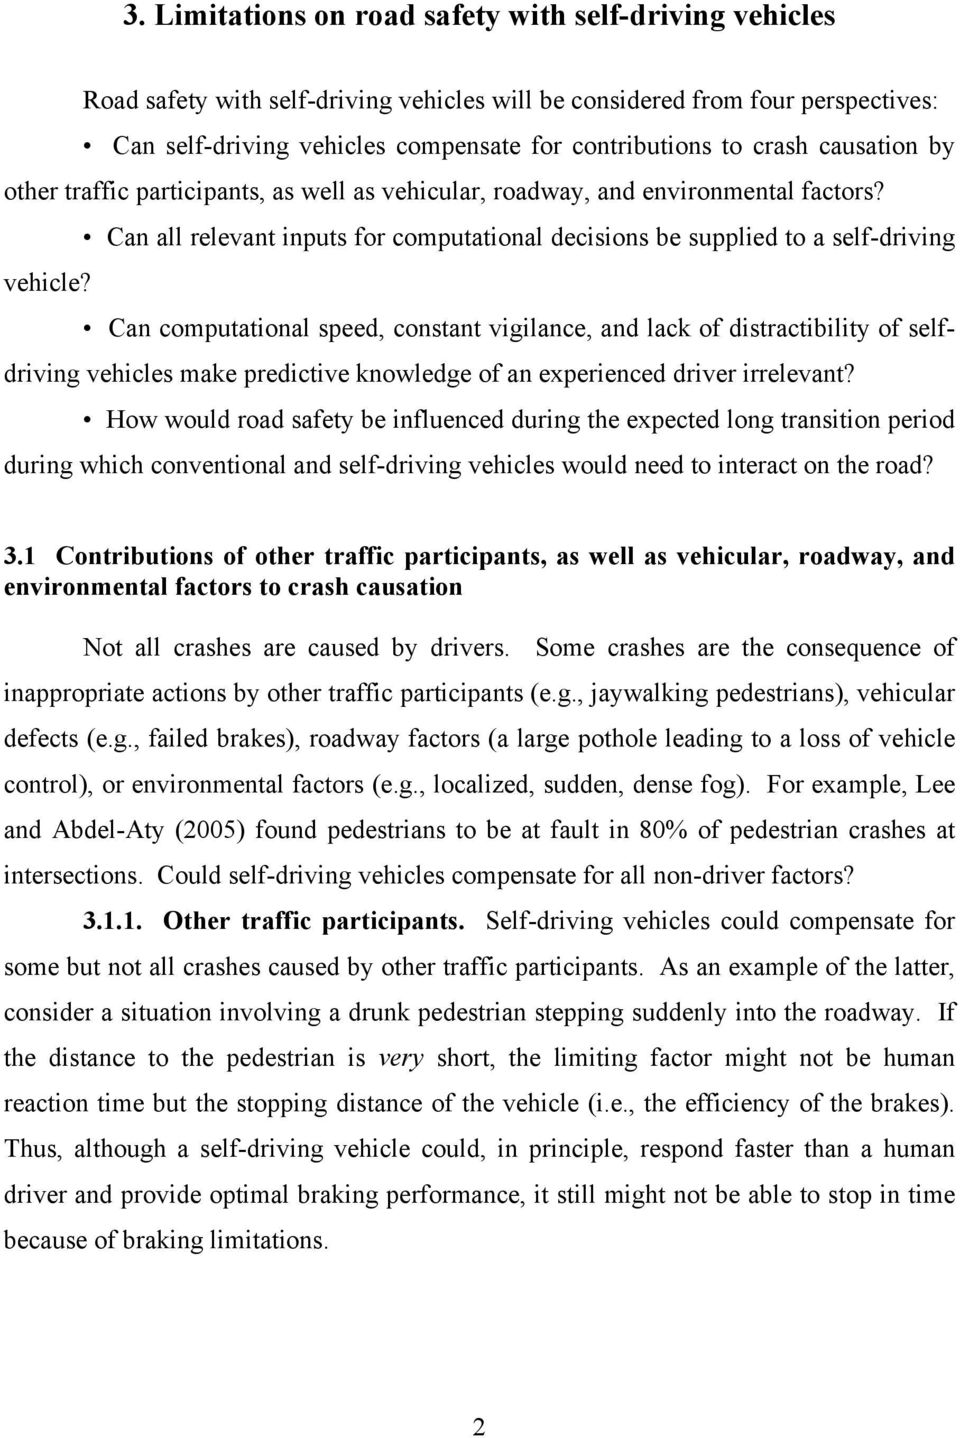 Can computational speed, constant vigilance, and lack of distractibility of selfdriving vehicles make predictive knowledge of an experienced driver irrelevant?